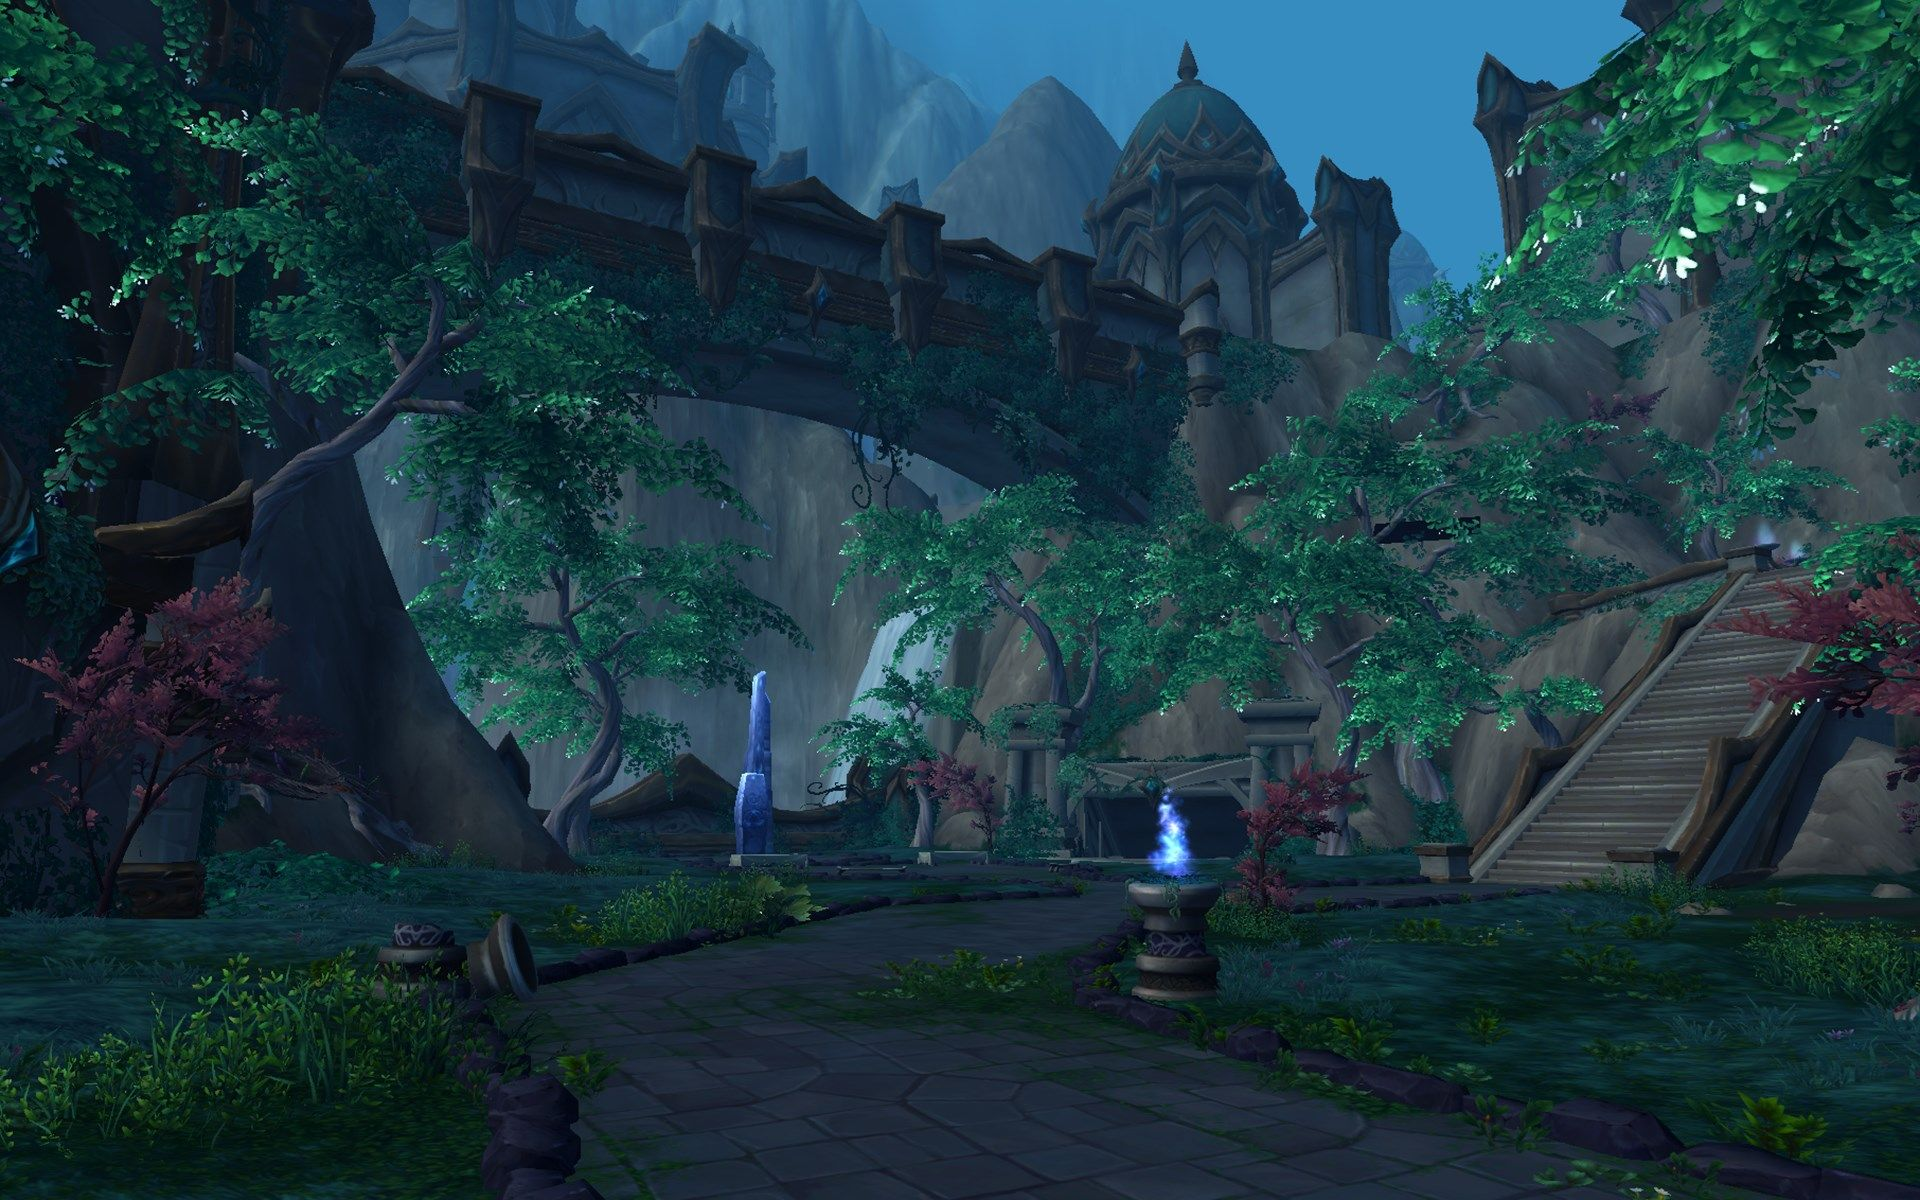 world-of-warcraft-screenshot-22